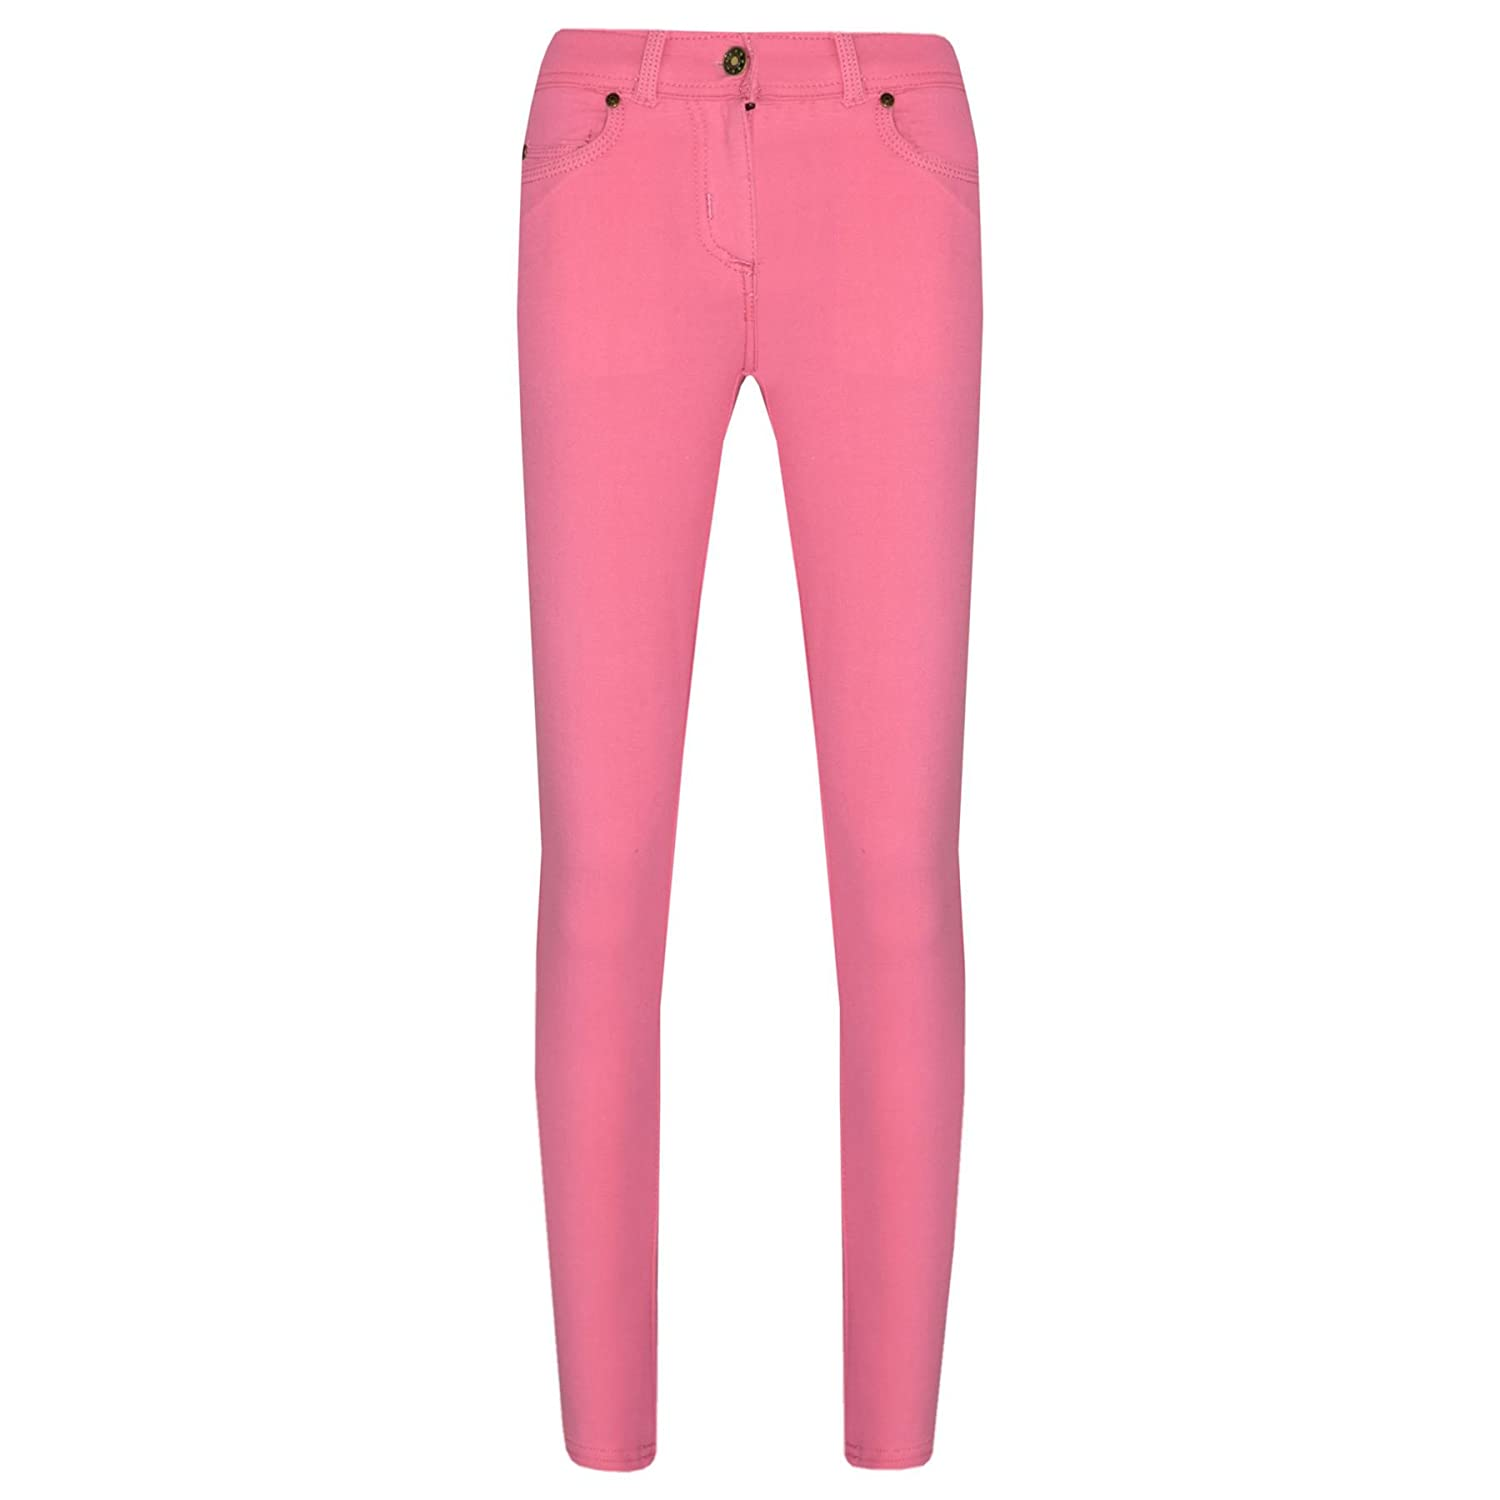 A2Z 4 Kids Girls Skinny Jeans Kids Stretchy Jeggings Denim Fit Pants - Girls Jeggings 061 Pink 7-8